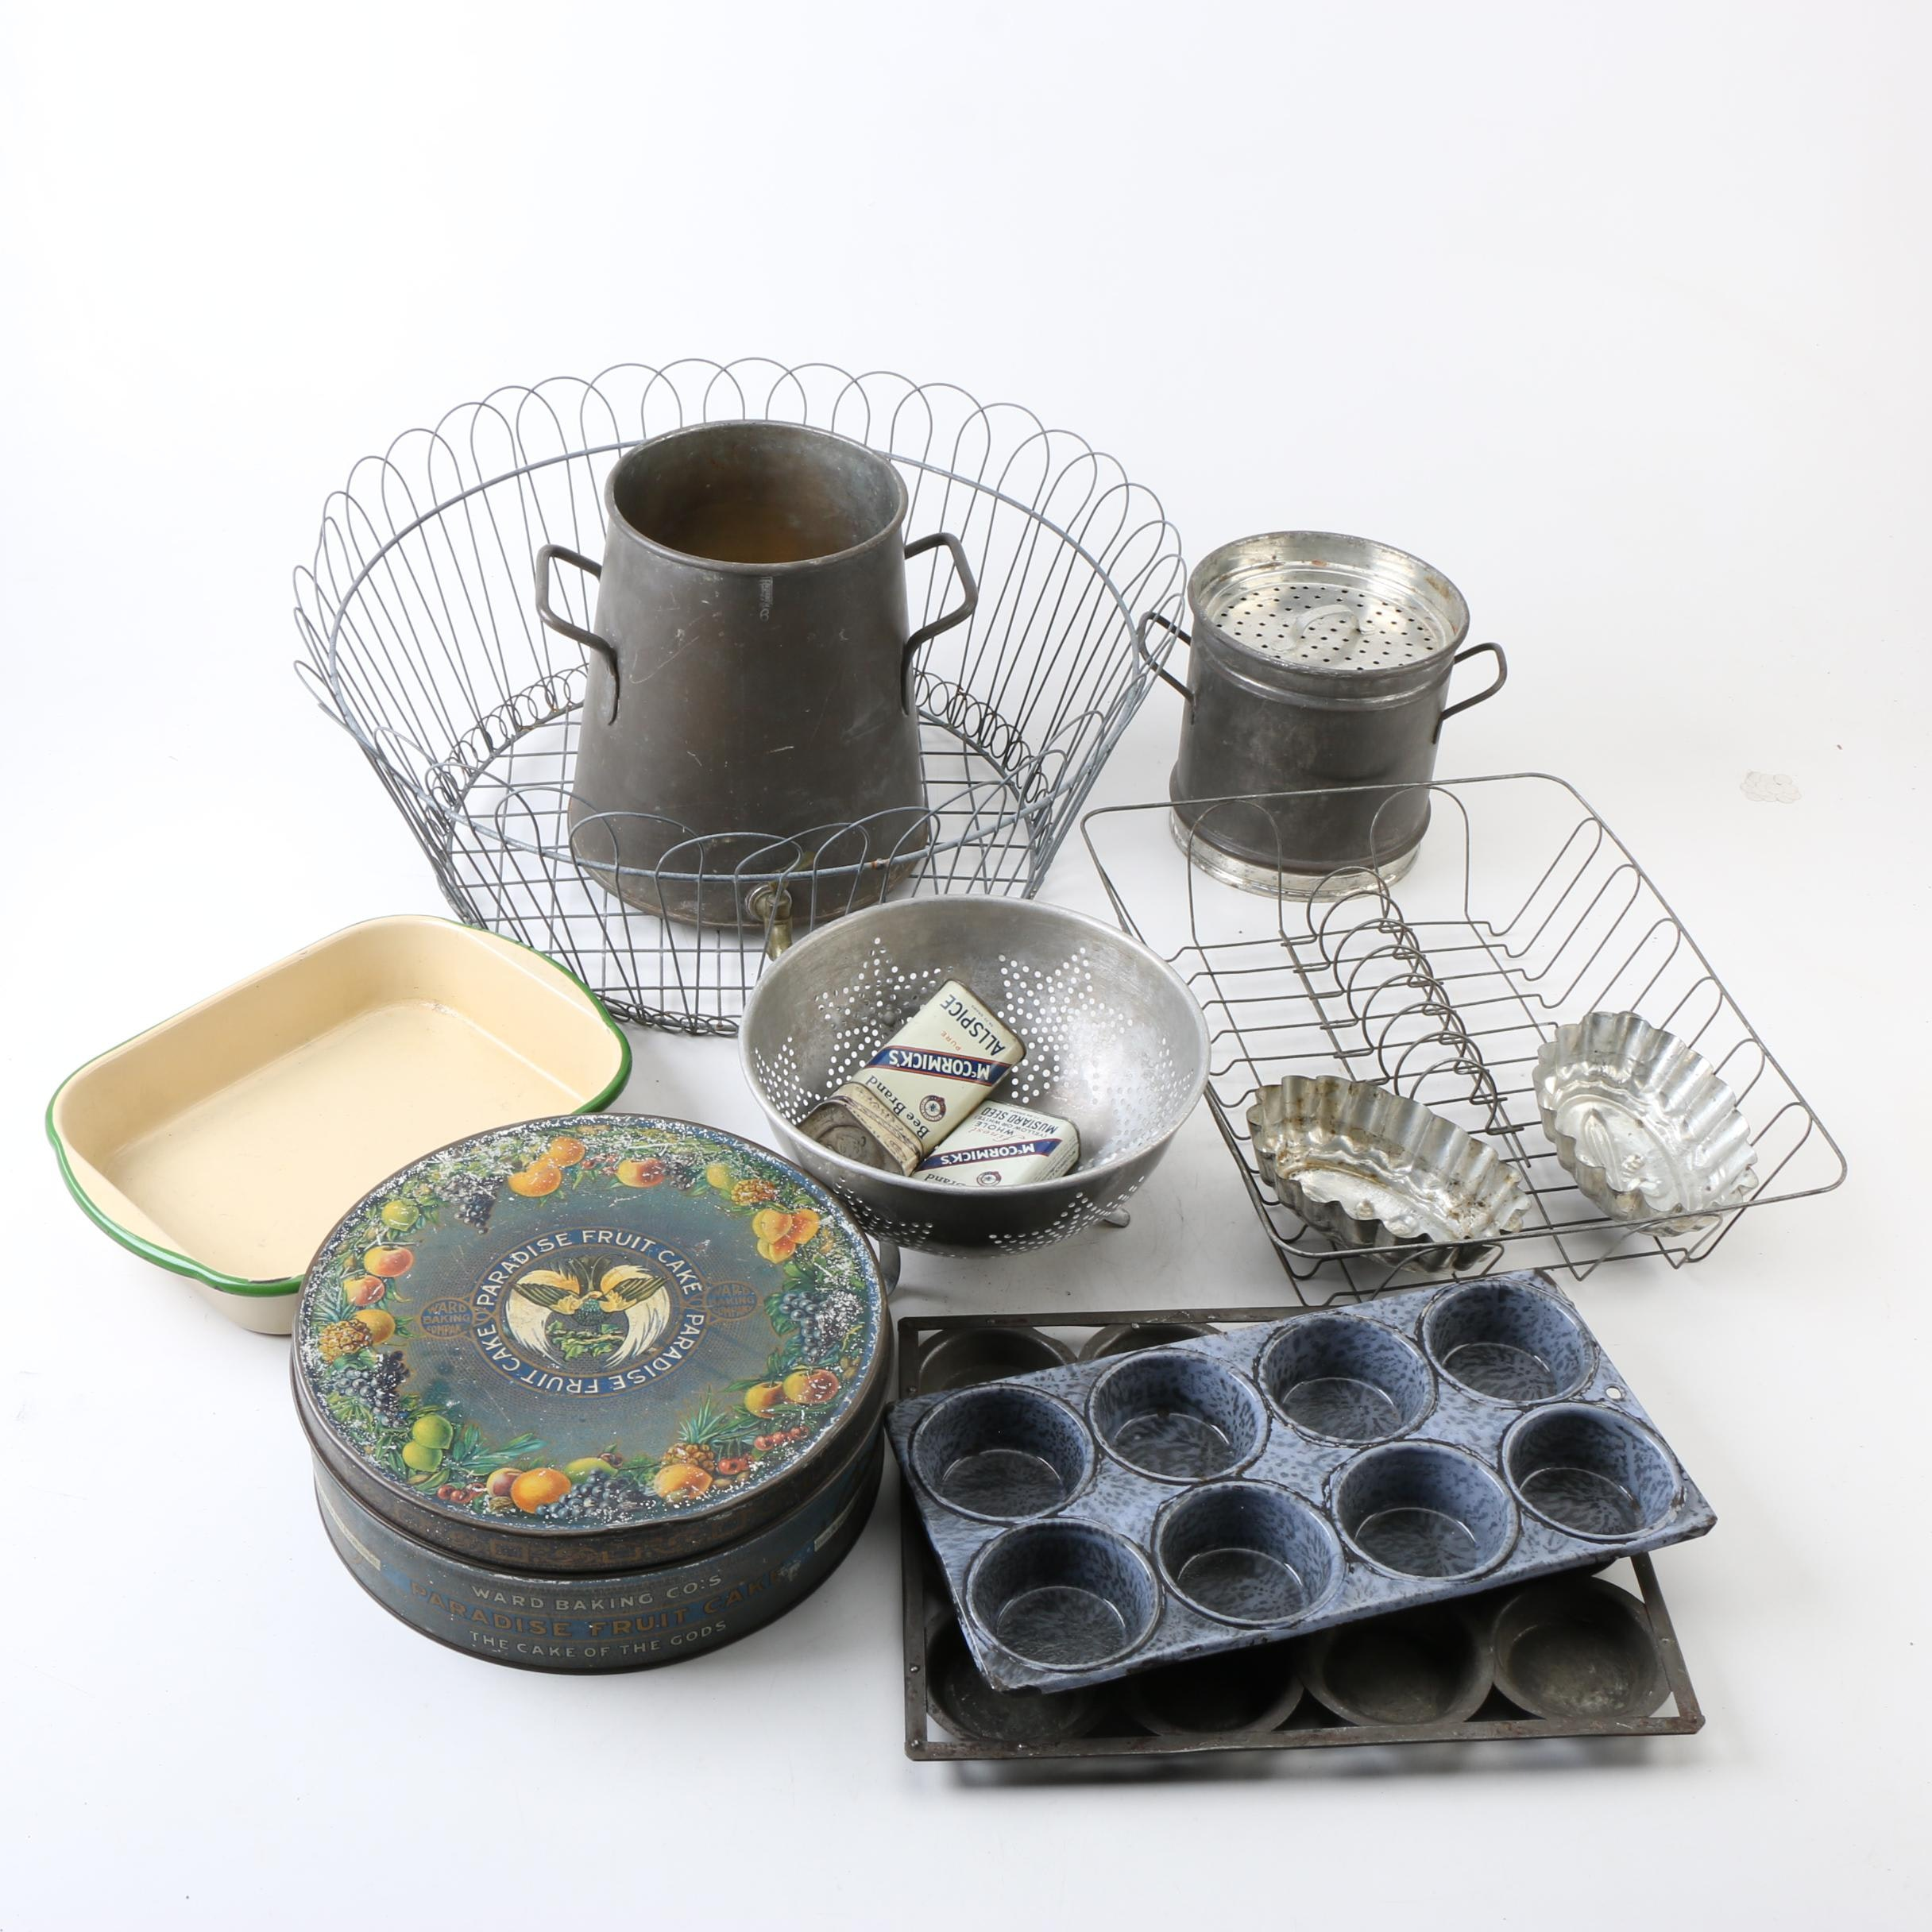 Vintage Bakeware with Molds and Other Kitchenware